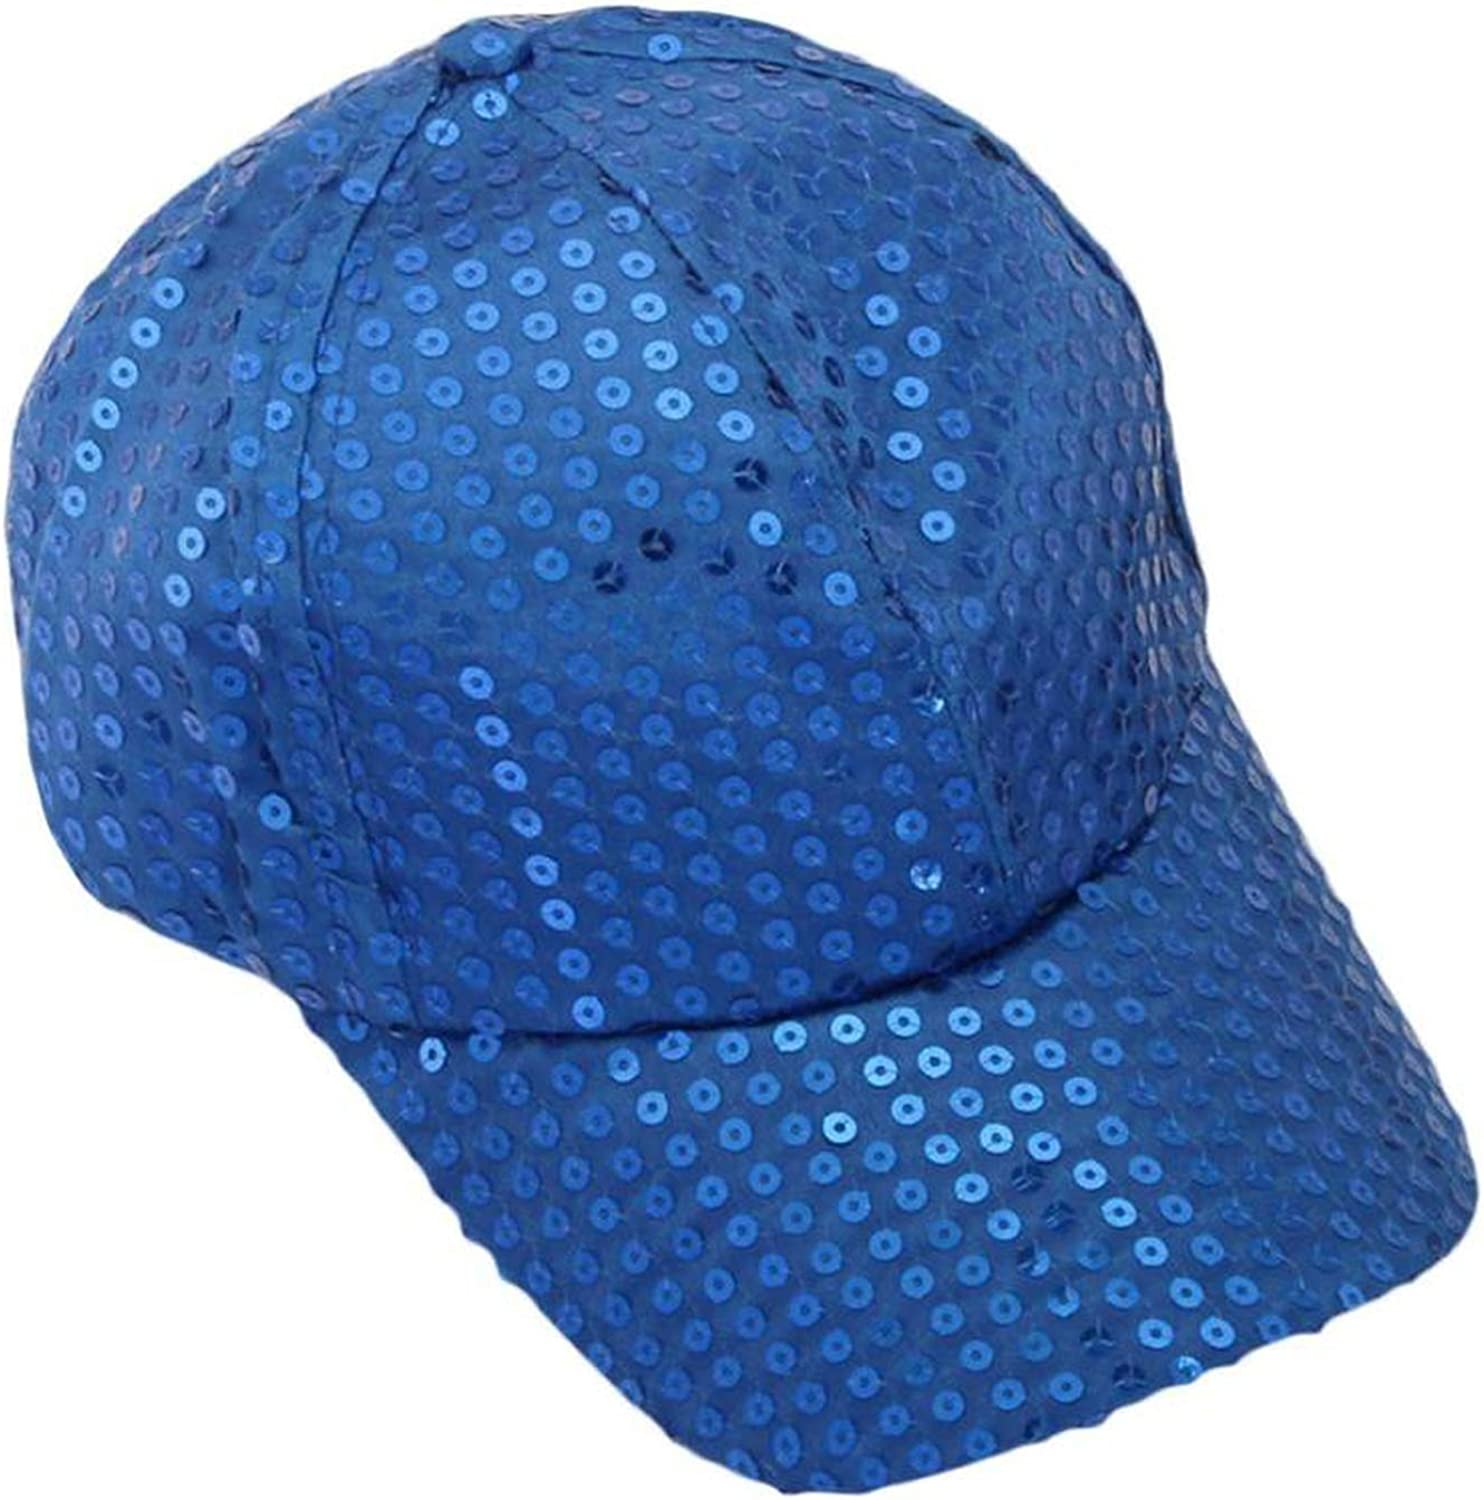 Wension Fashion Sequin Baseball Cap Summer Hats for Women Sombrero